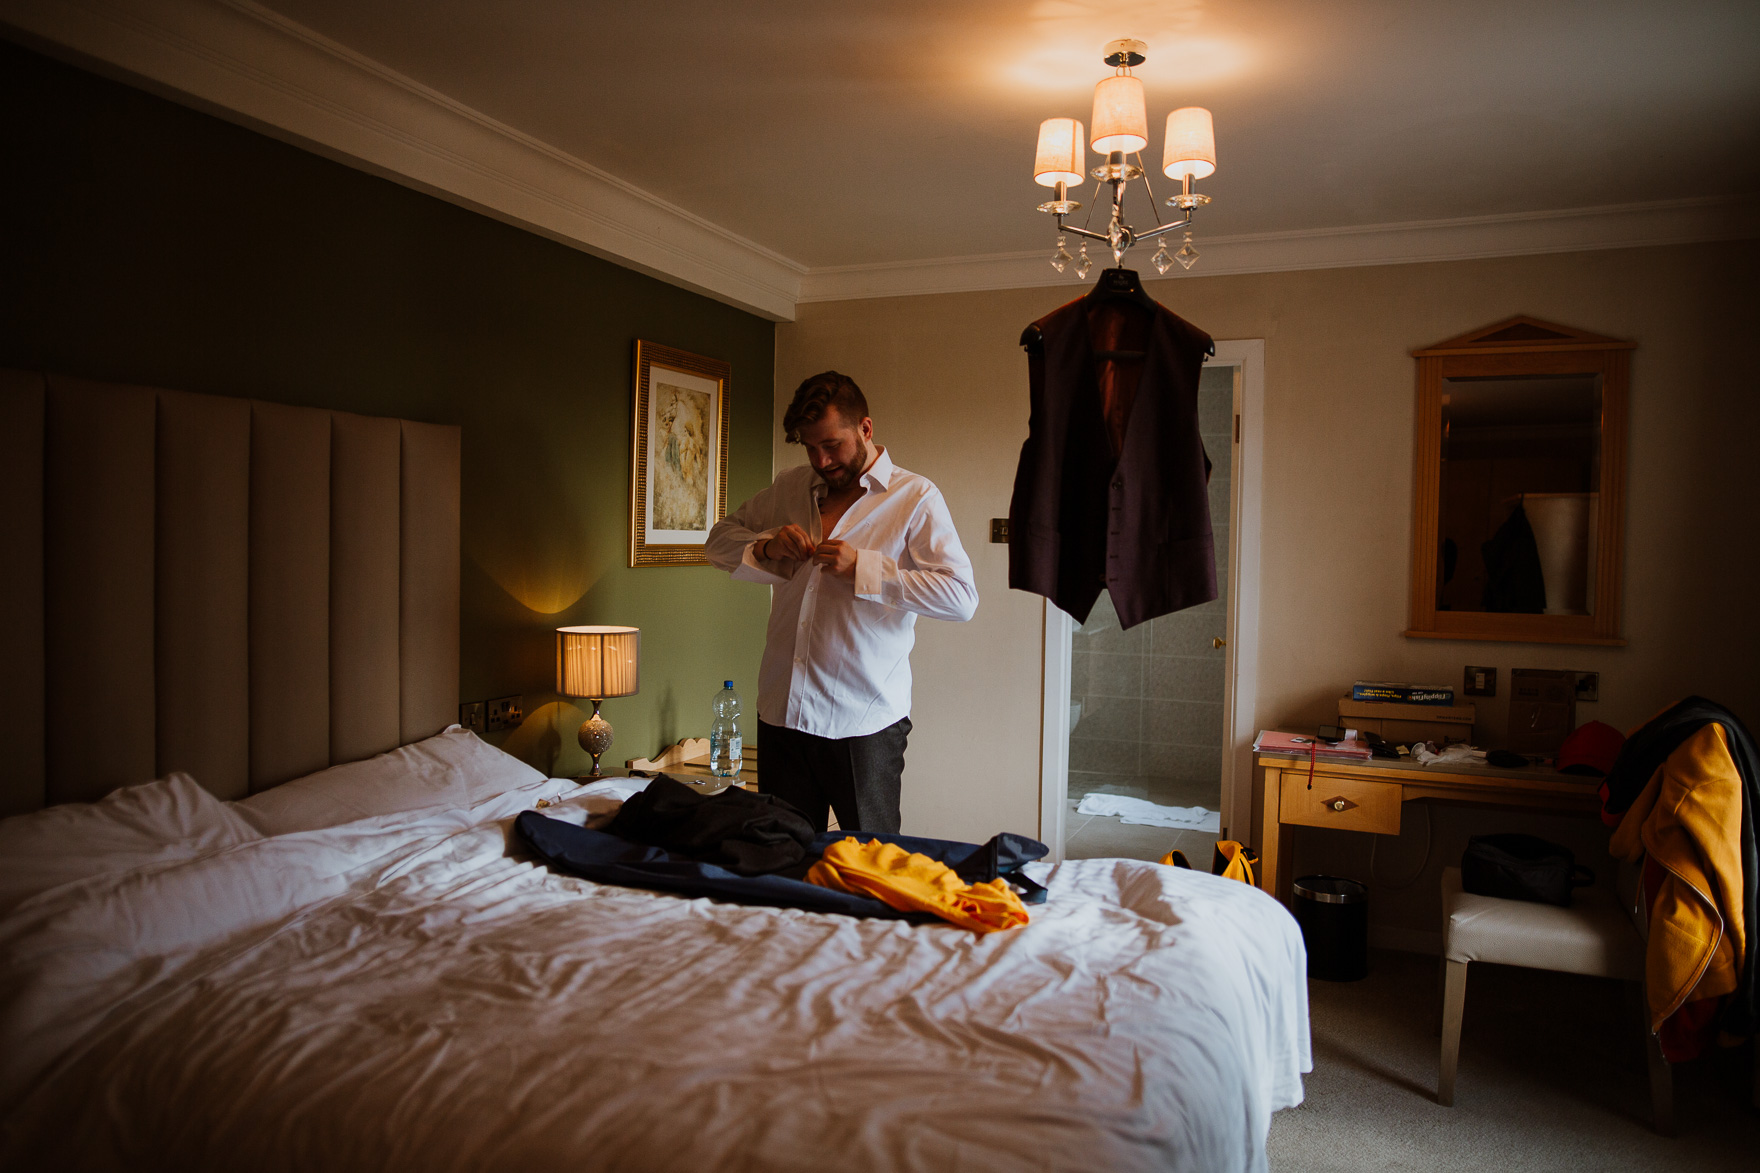 A bedroom with a bed and a person standing in a room